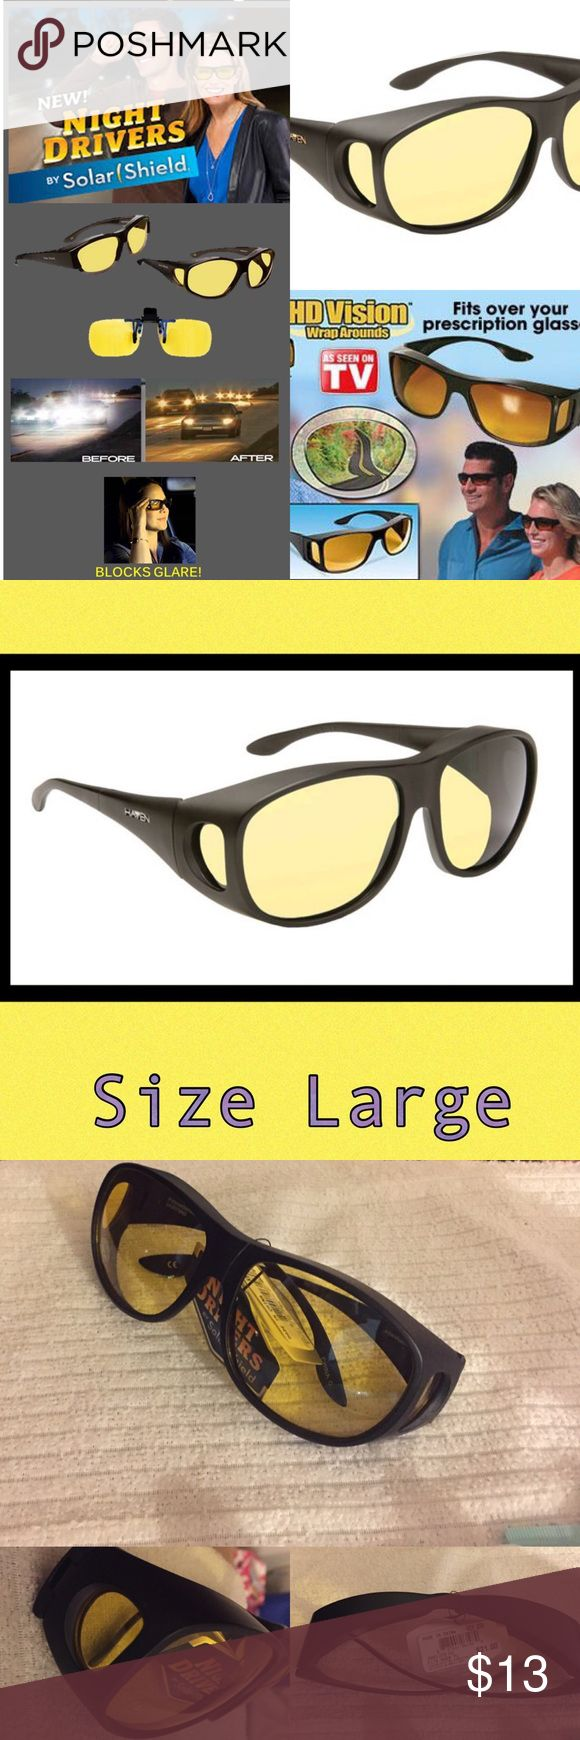 HD Night Drivers Anti Glare Wrap Around Glasses HD Night Vision Wraparounds fit over your glasses to reduce night time glare and eye strain. Improves Color, Clarity and Definition size Large Solar Shield Accessories Sunglasses